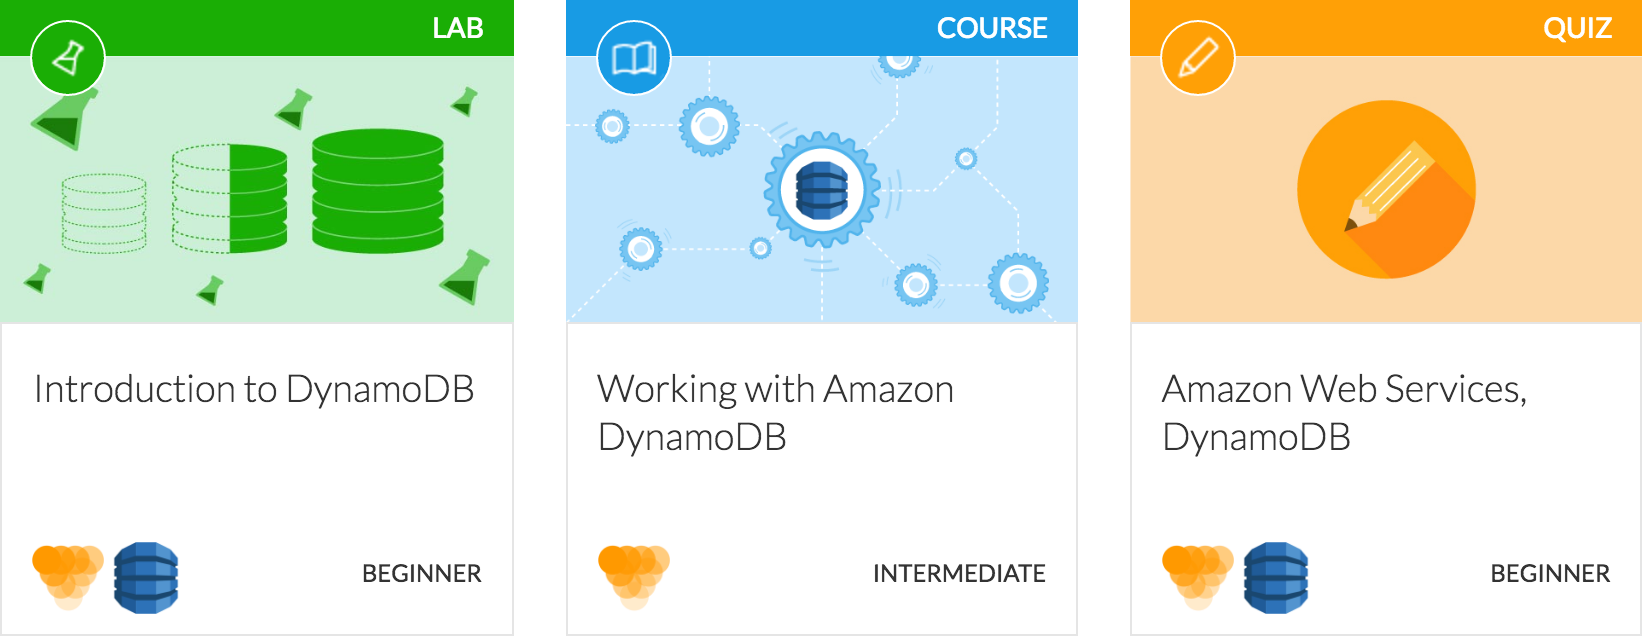 amazon courses at Cloud Academy